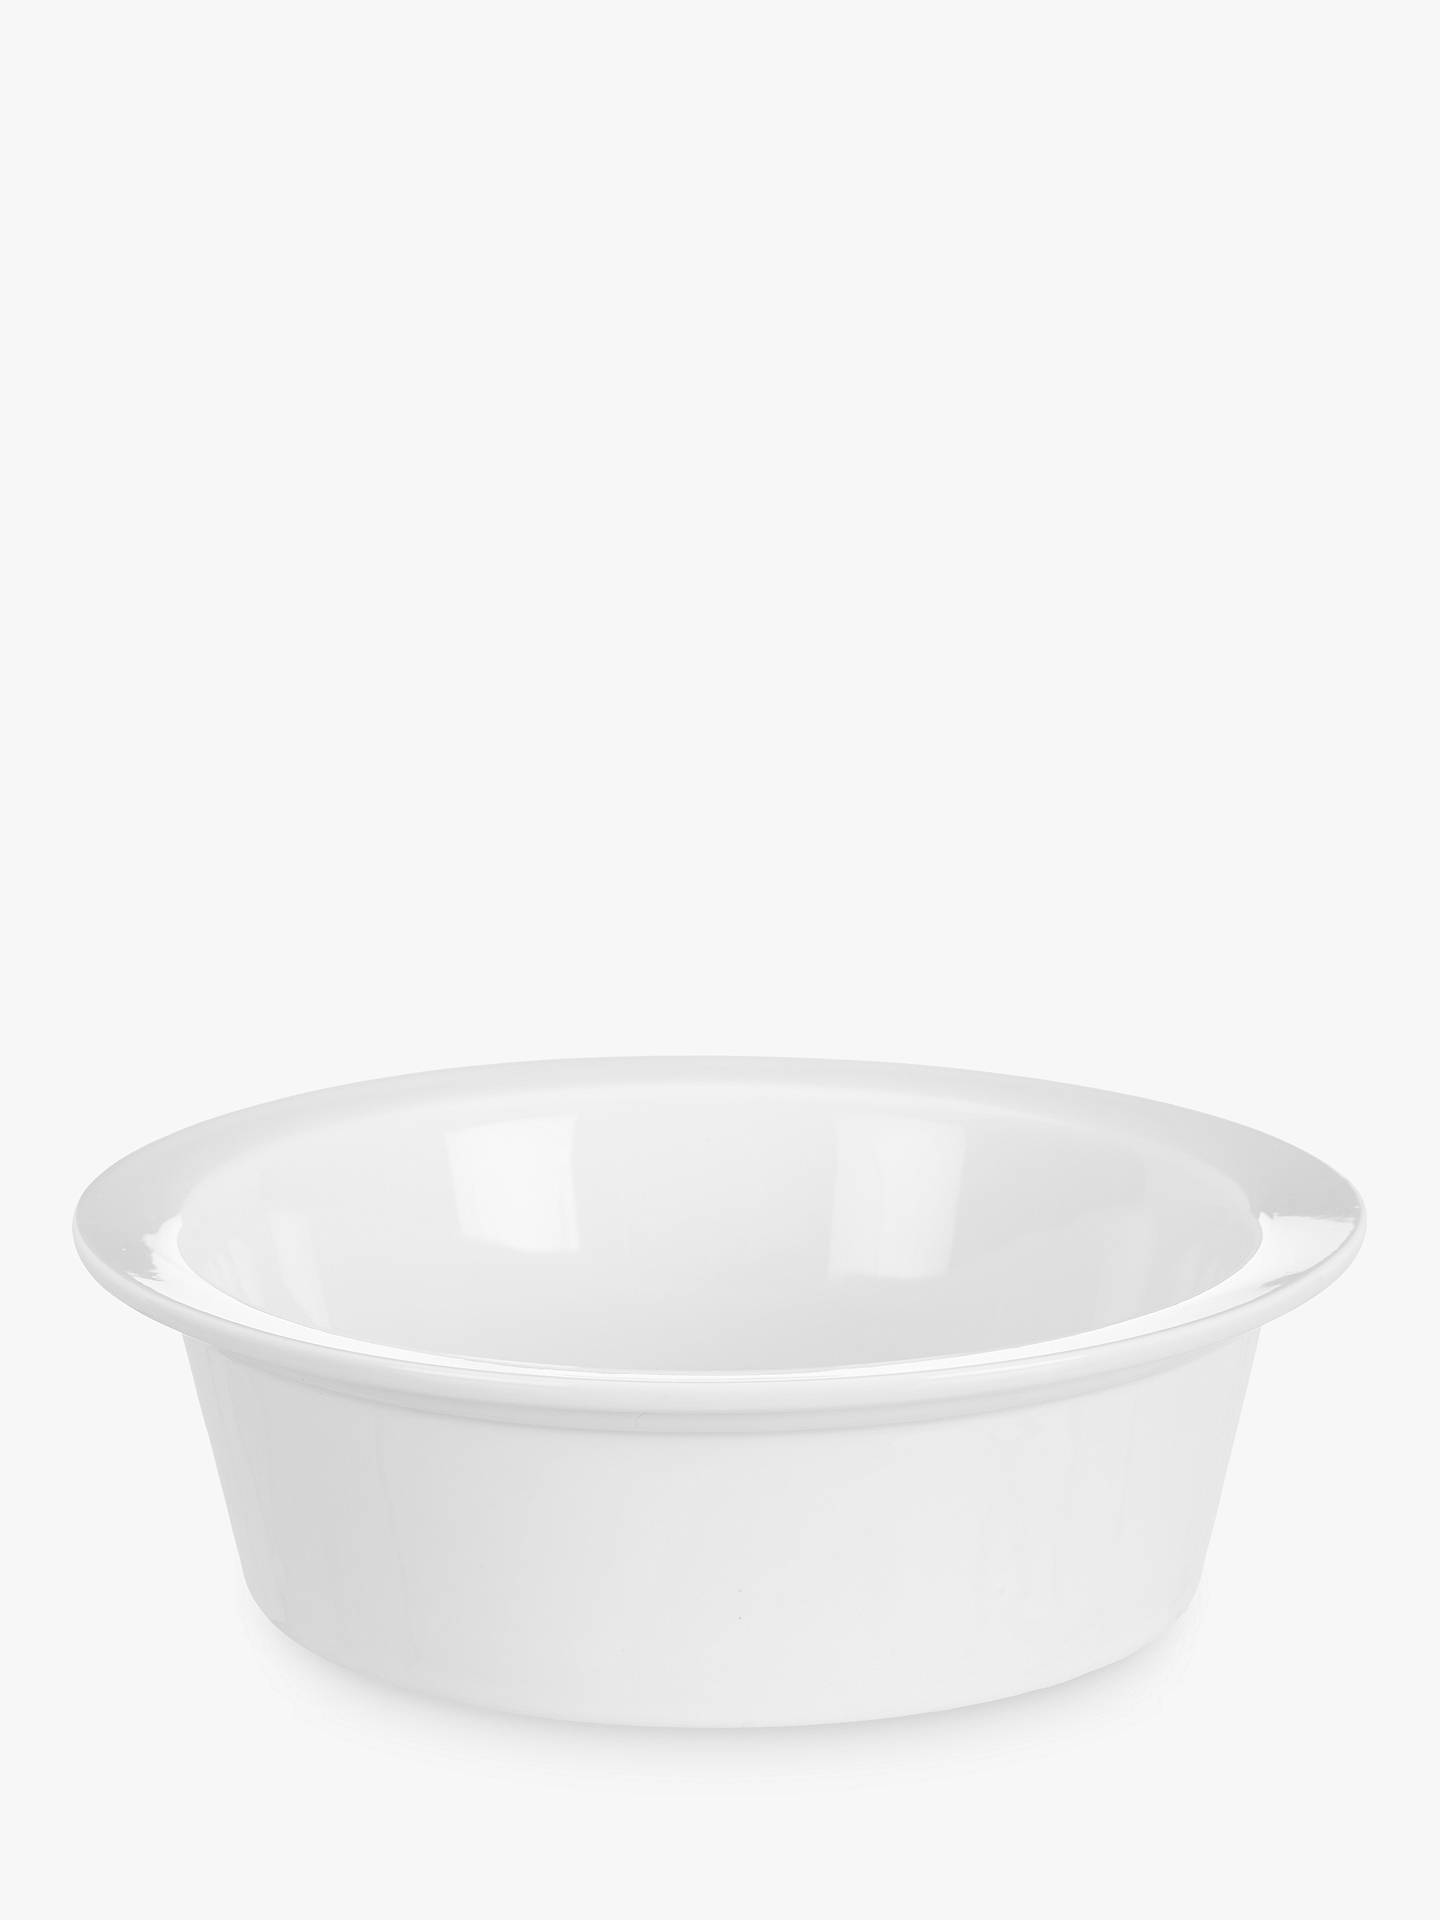 BuyJohn Lewis & Partners Porcelain Round Individual Pie Oven Dish Online at johnlewis.com